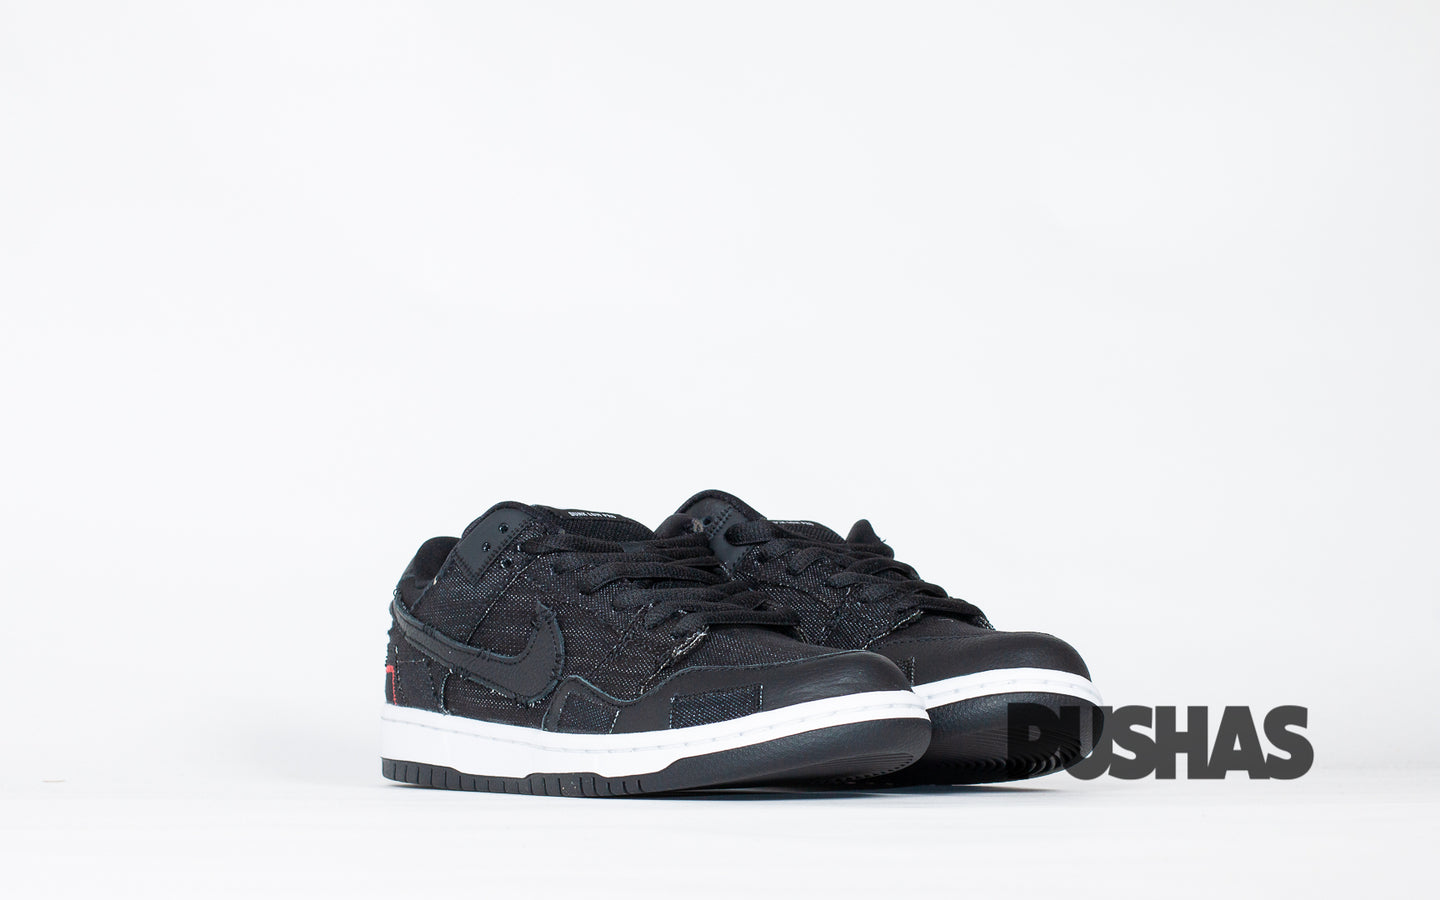 pushas-nike-SB-Dunk-Low-Wasted-Youth